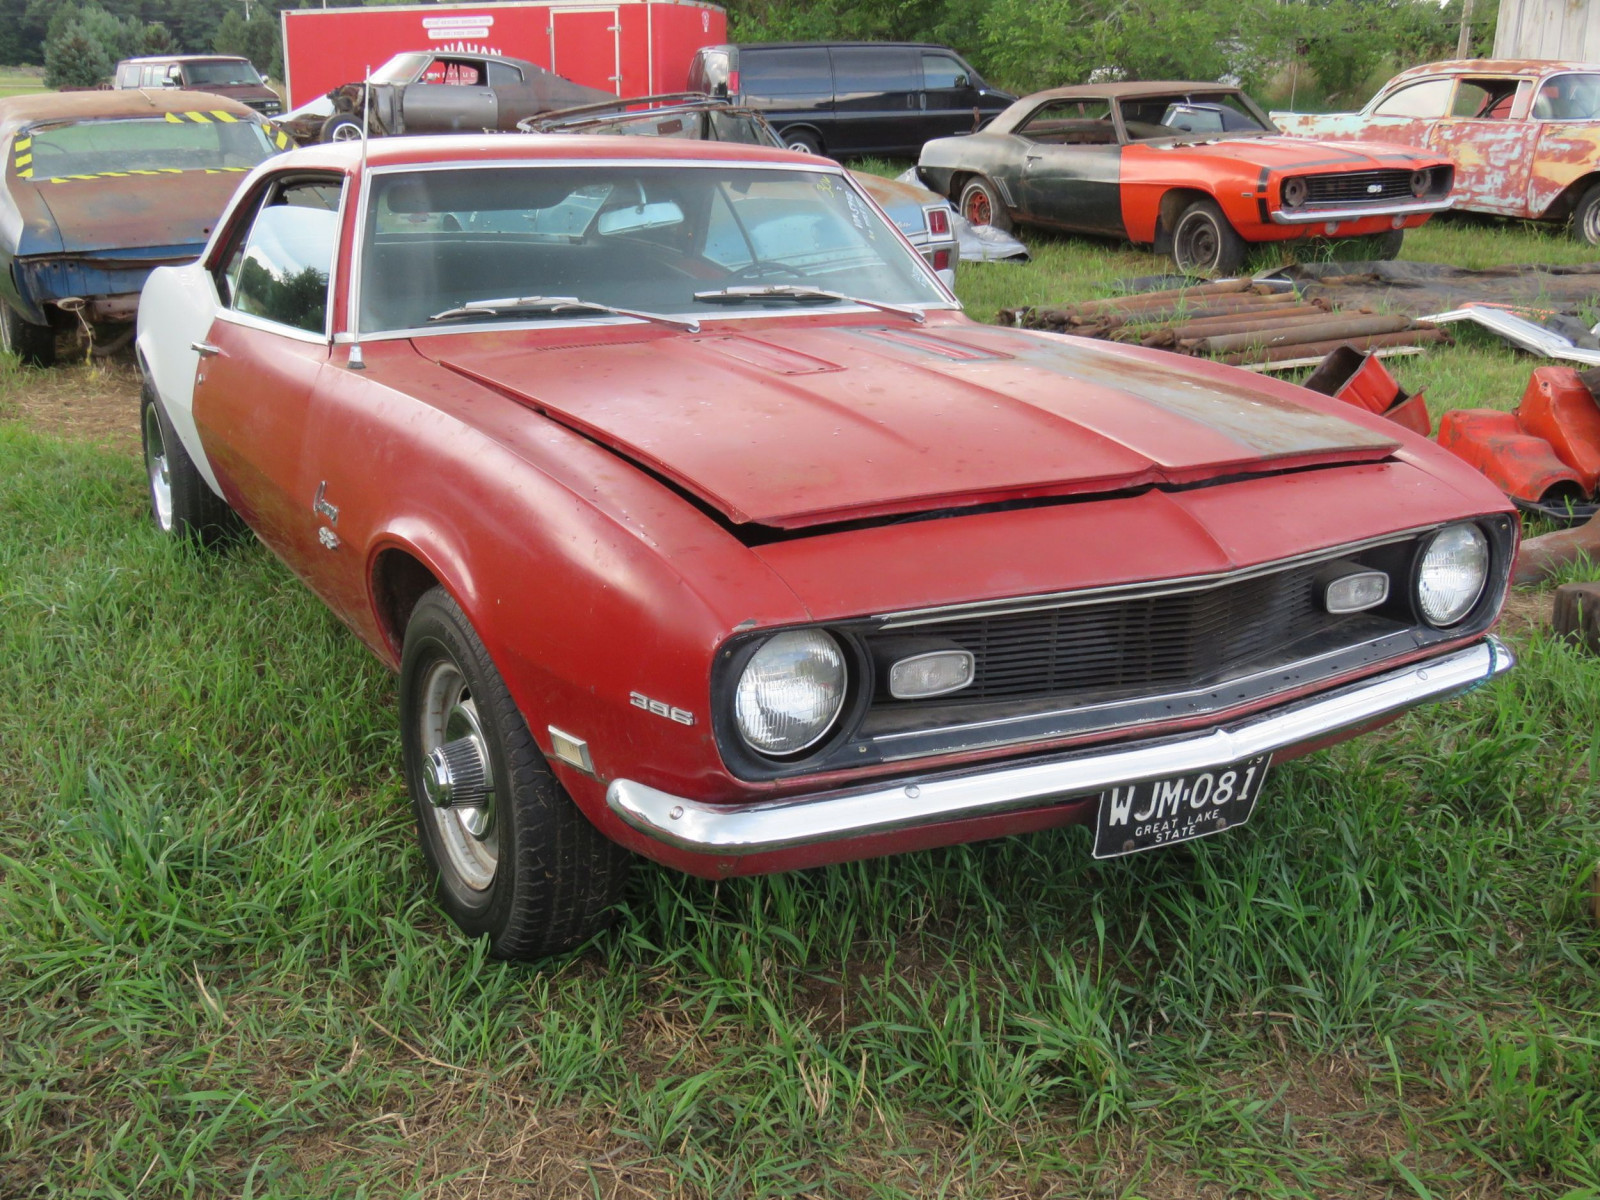 1968 Chevrolet Camaro SS Coupe - Image 1